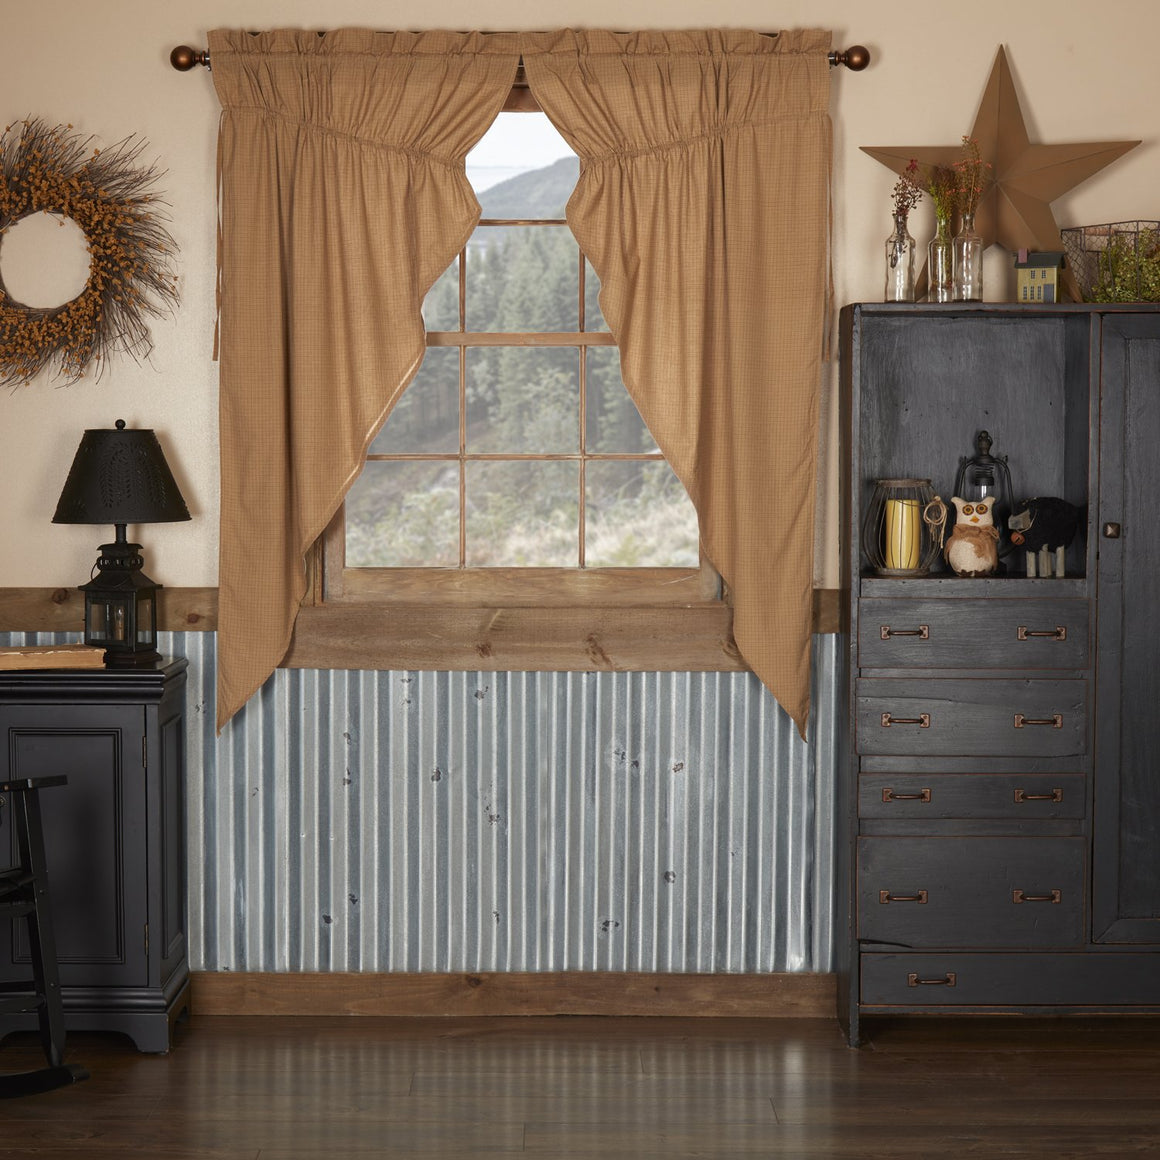 Kindred Star Plaid Prairie Short Panel Set of 2 63x36x18